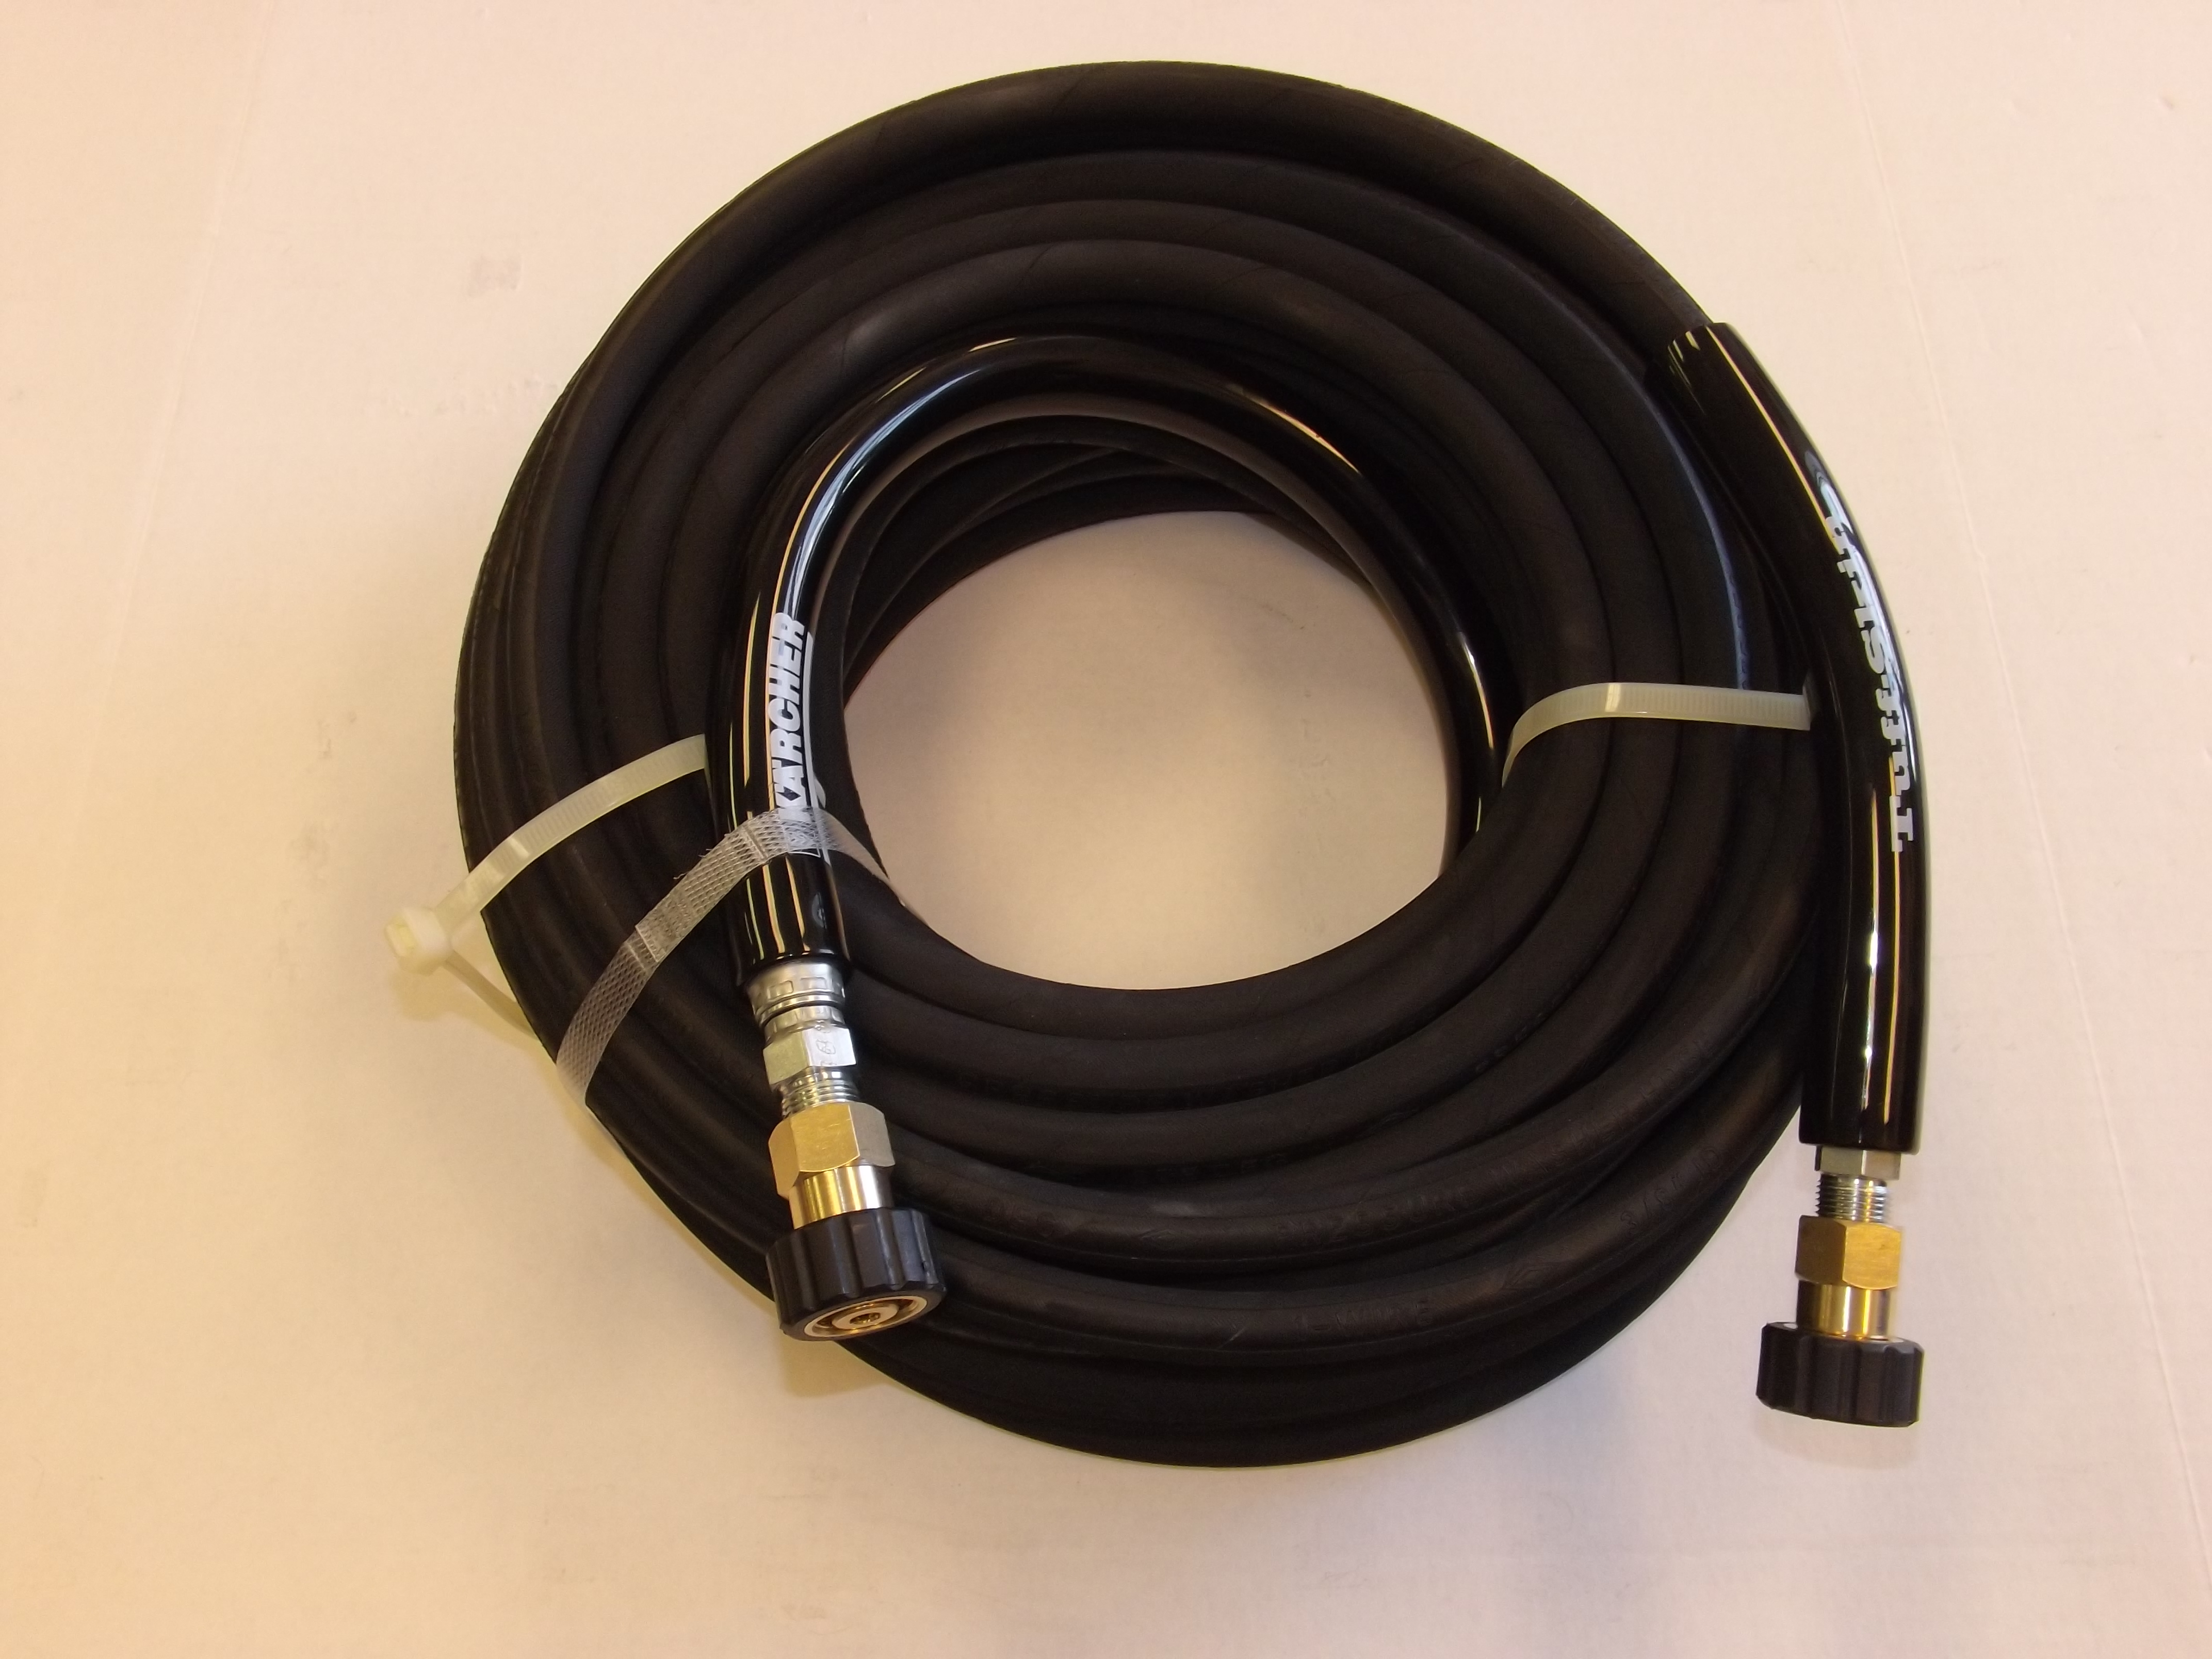 100' High Pressure Replacement Hose (4000psi, 22mm)